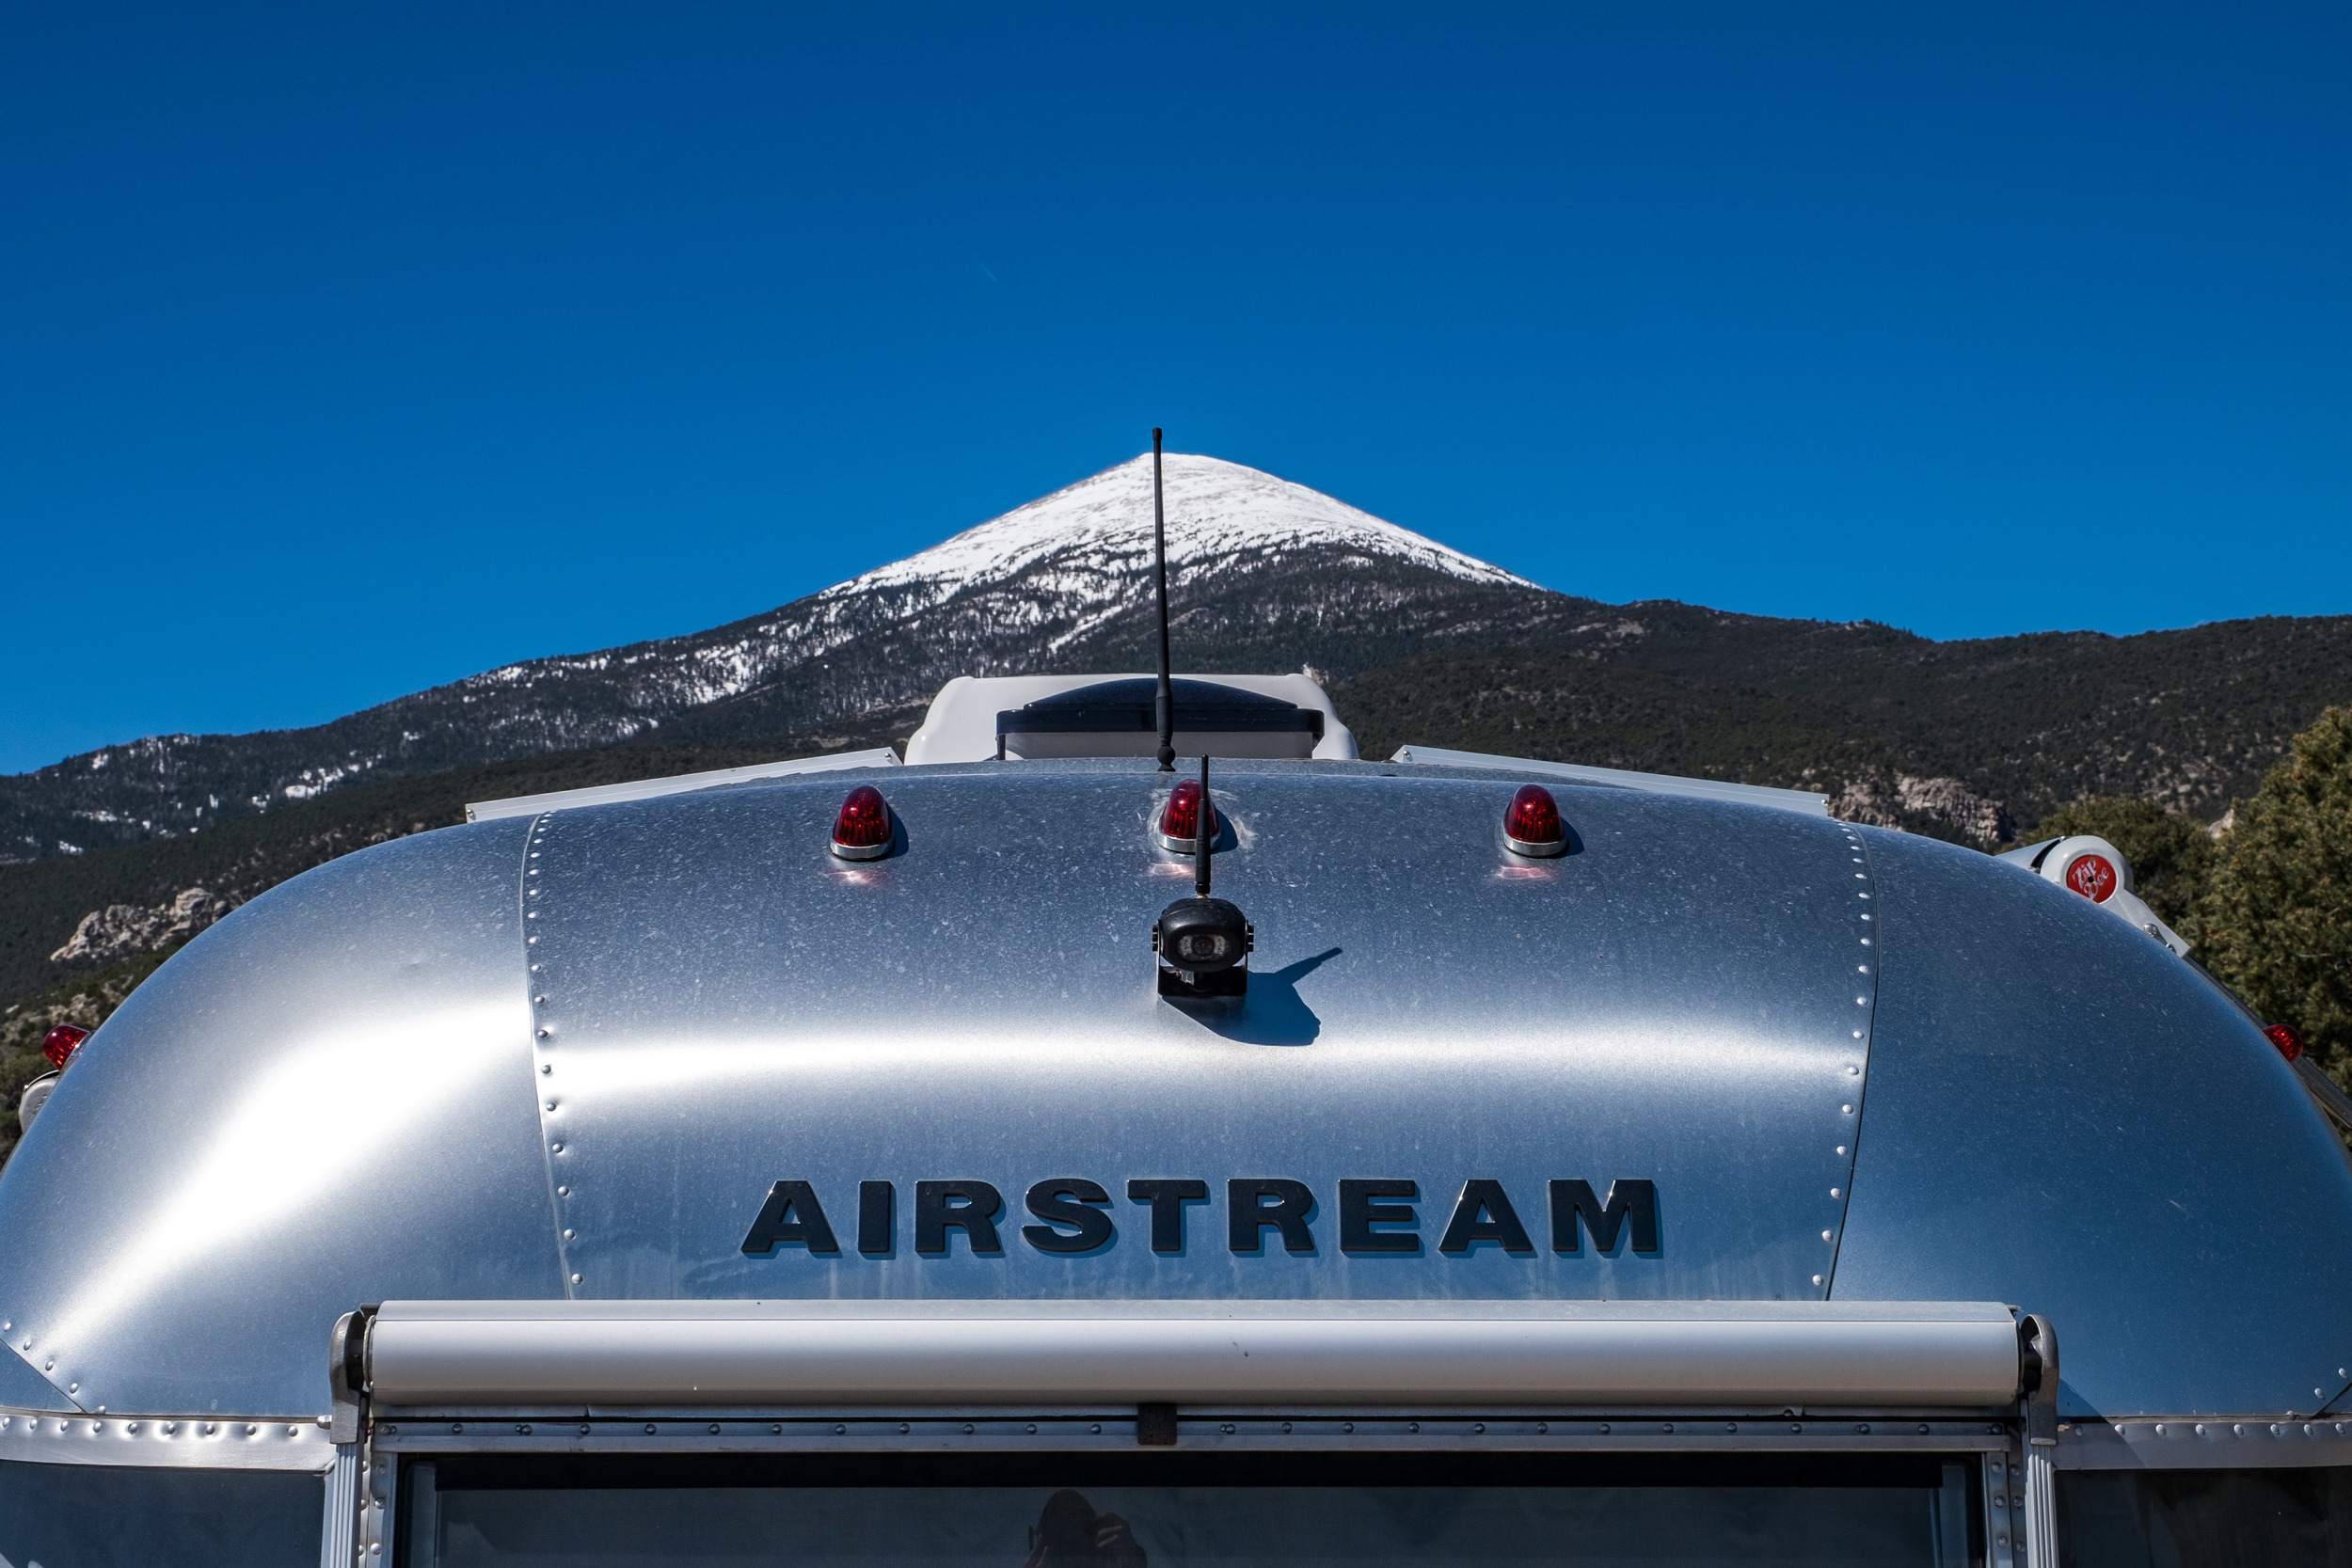 The Airstream logo looks mighty find with a beautiful Nevada mountain in the background.